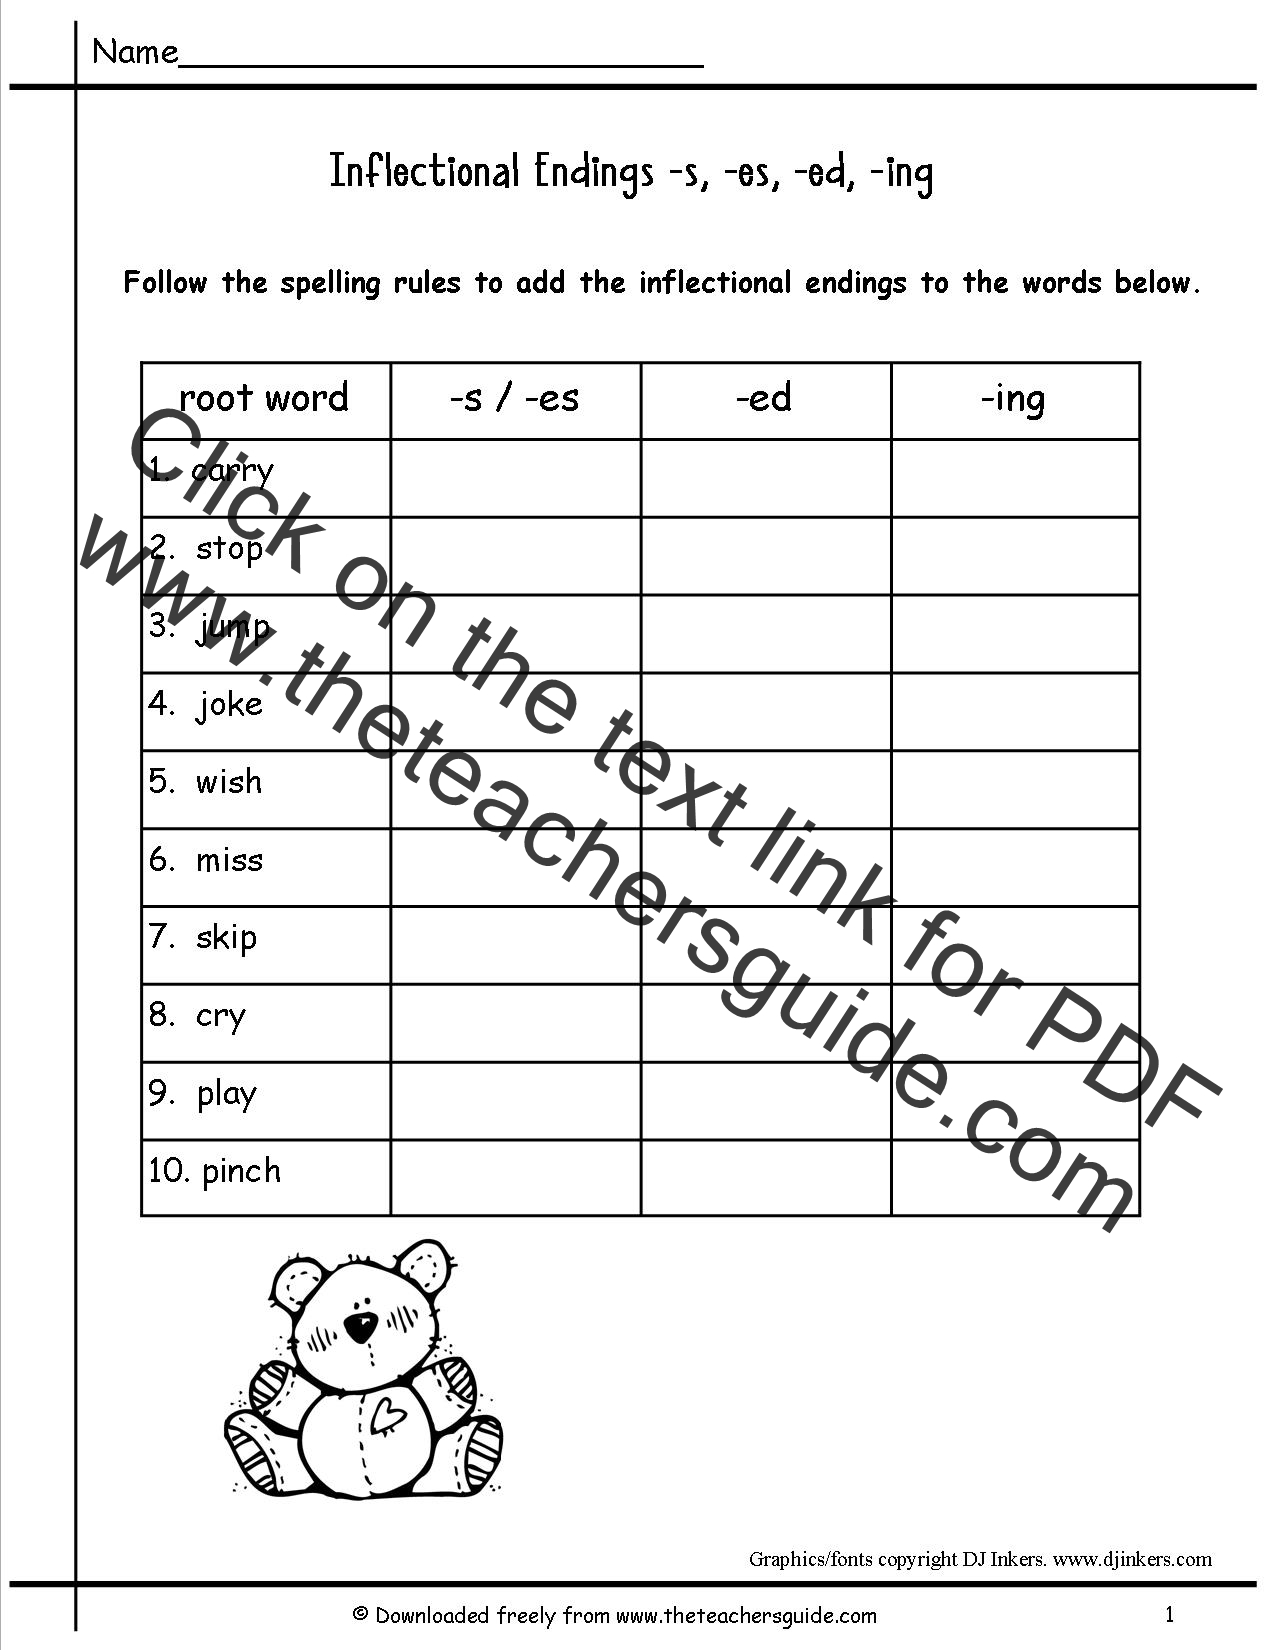 hight resolution of Inflectional Endings Worksheets   Printable Worksheets and Activities for  Teachers